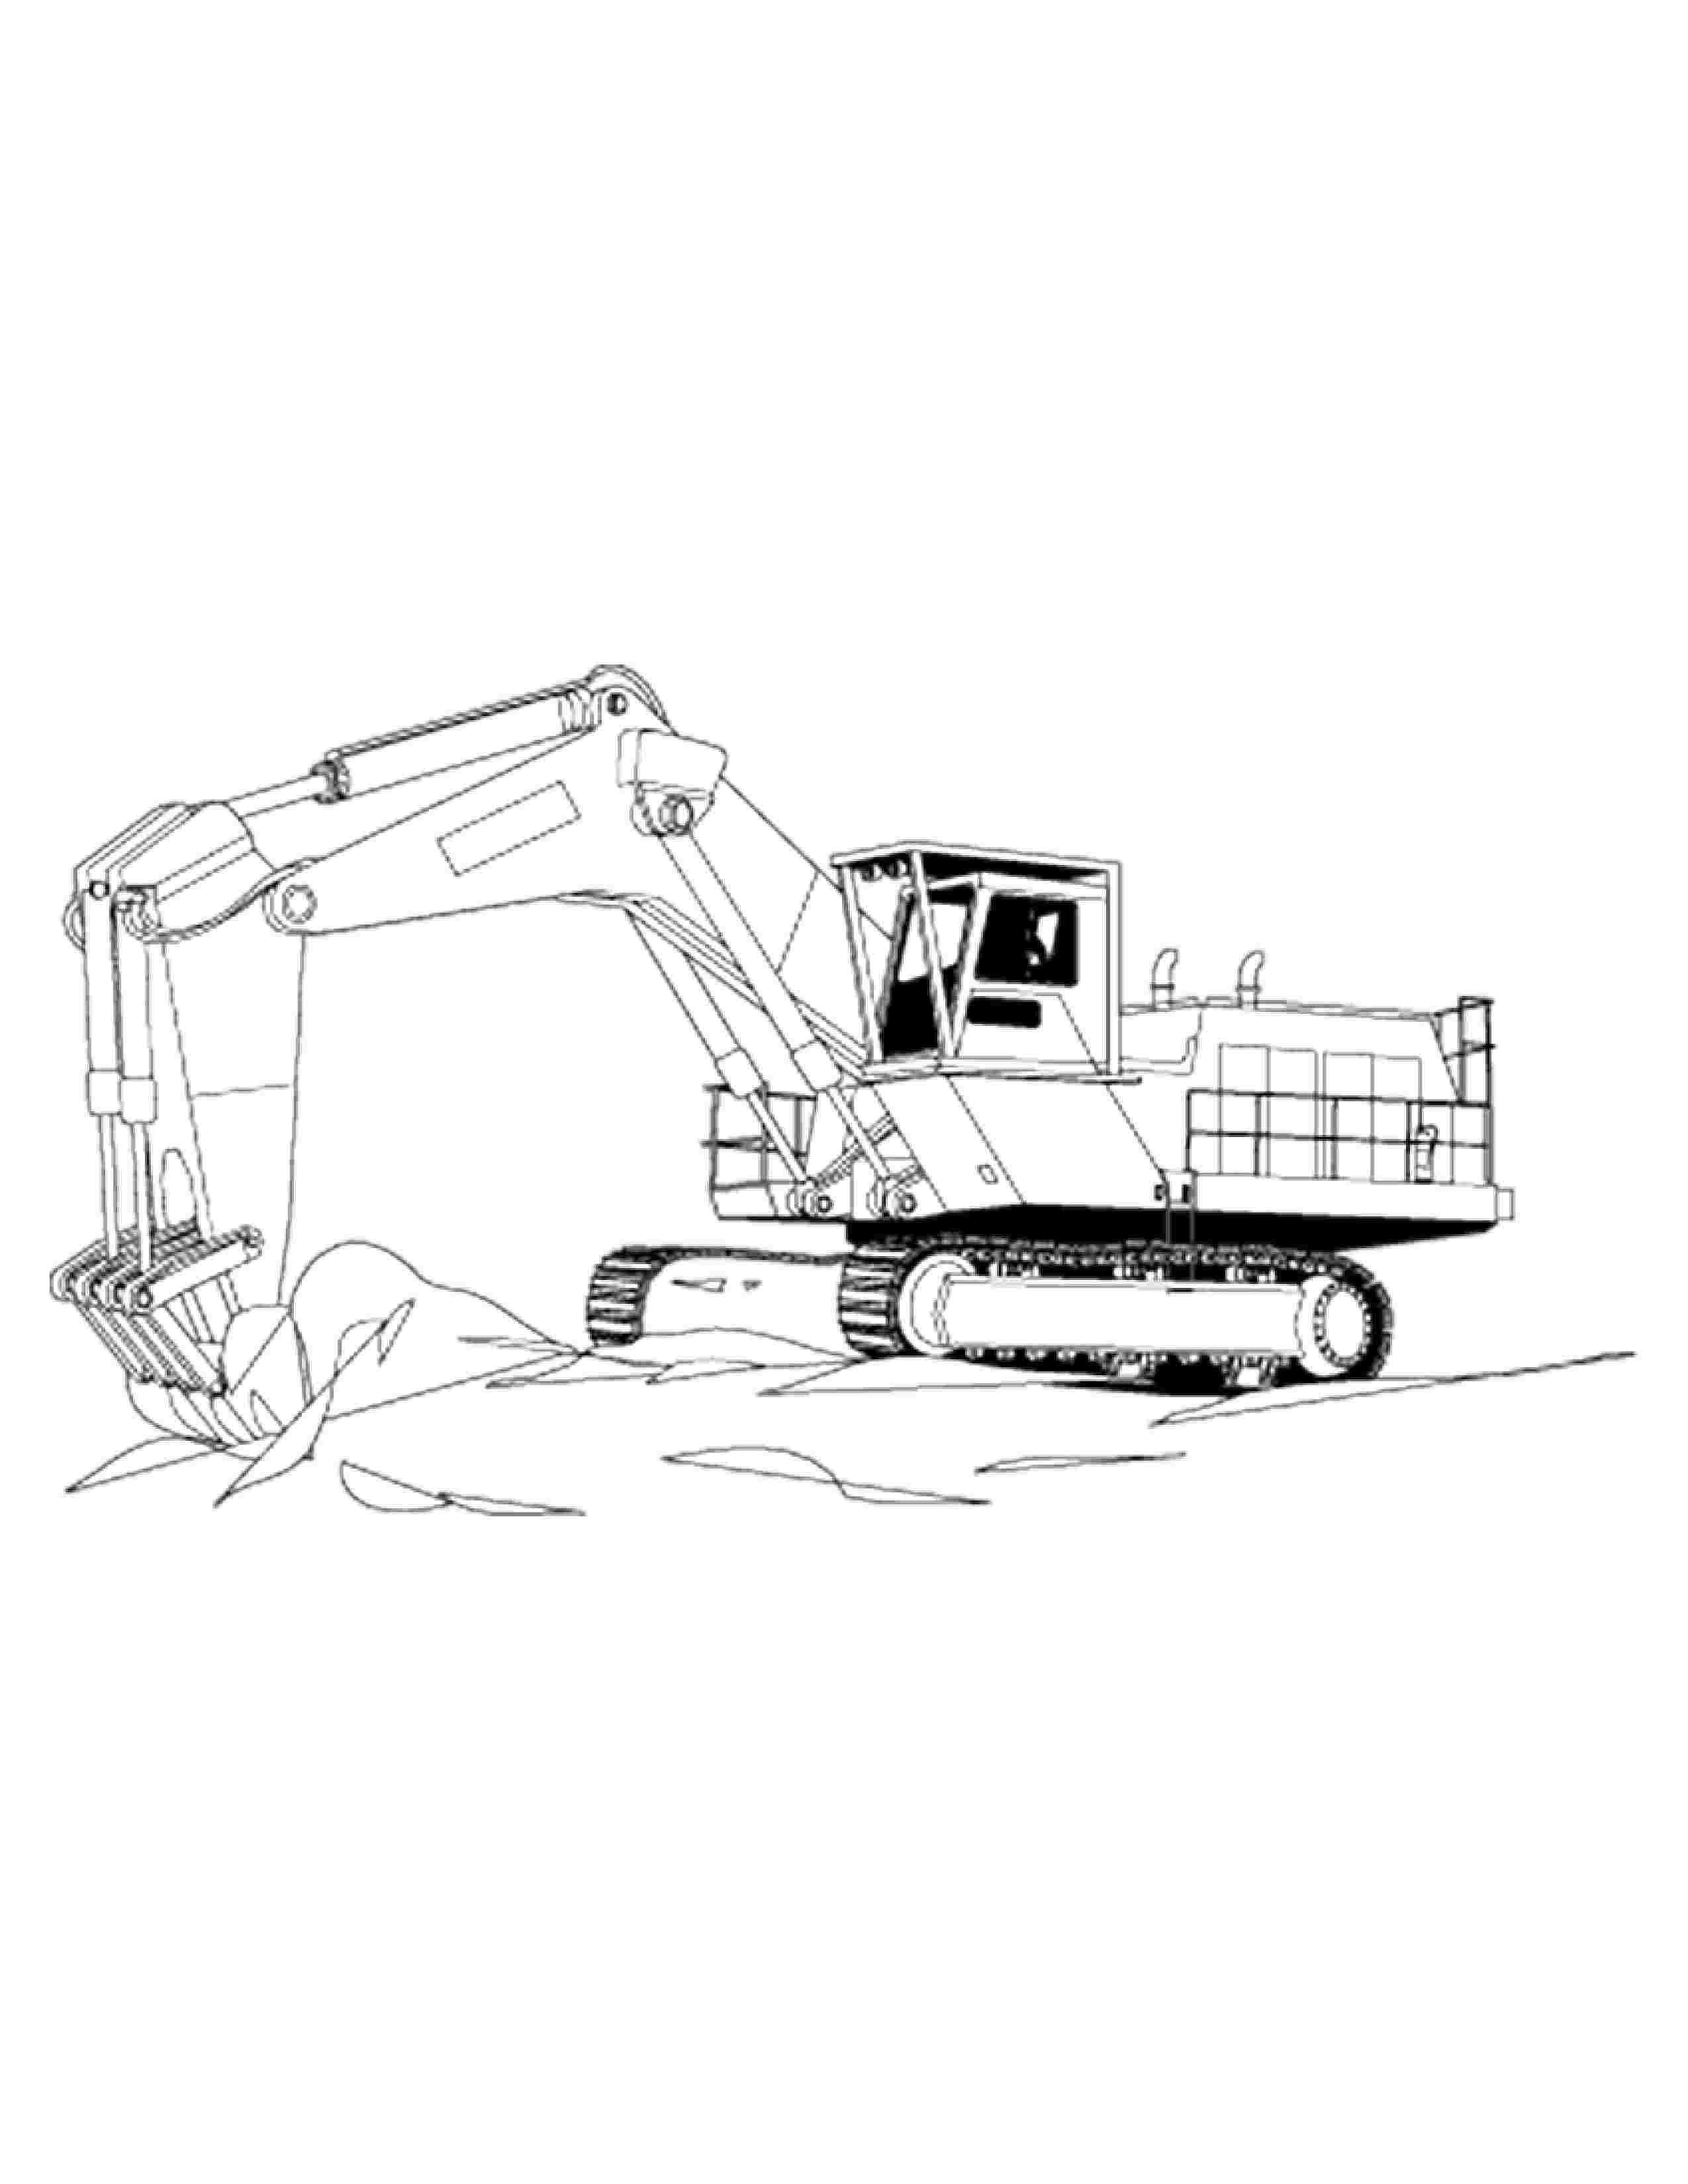 construction equipment coloring pages construction equipment drawing at getdrawings free download pages coloring equipment construction